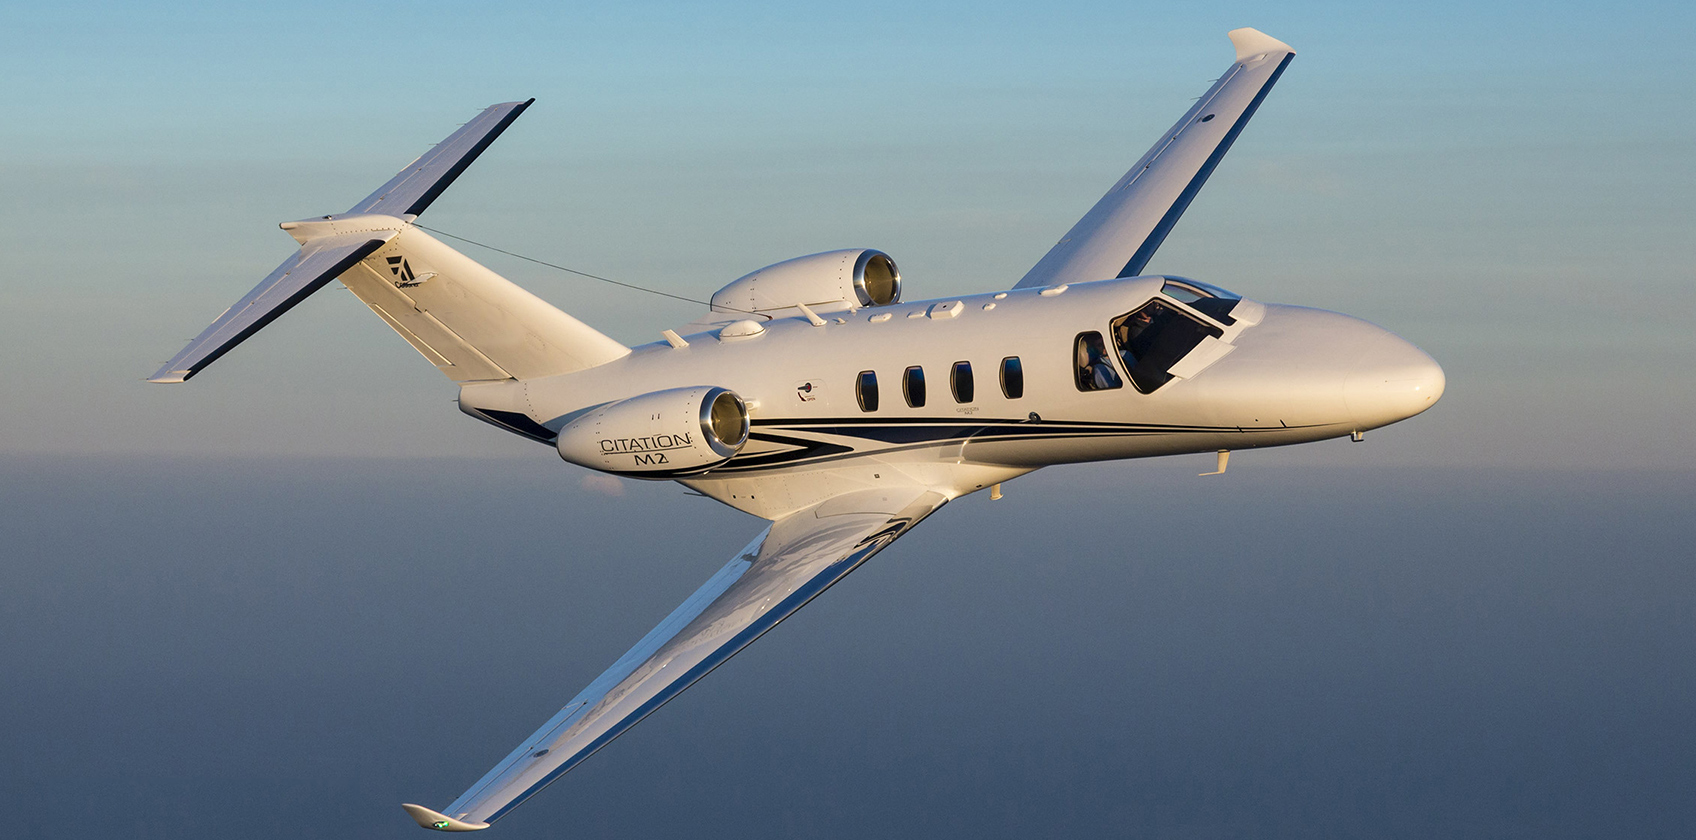 Citation M2 inflight